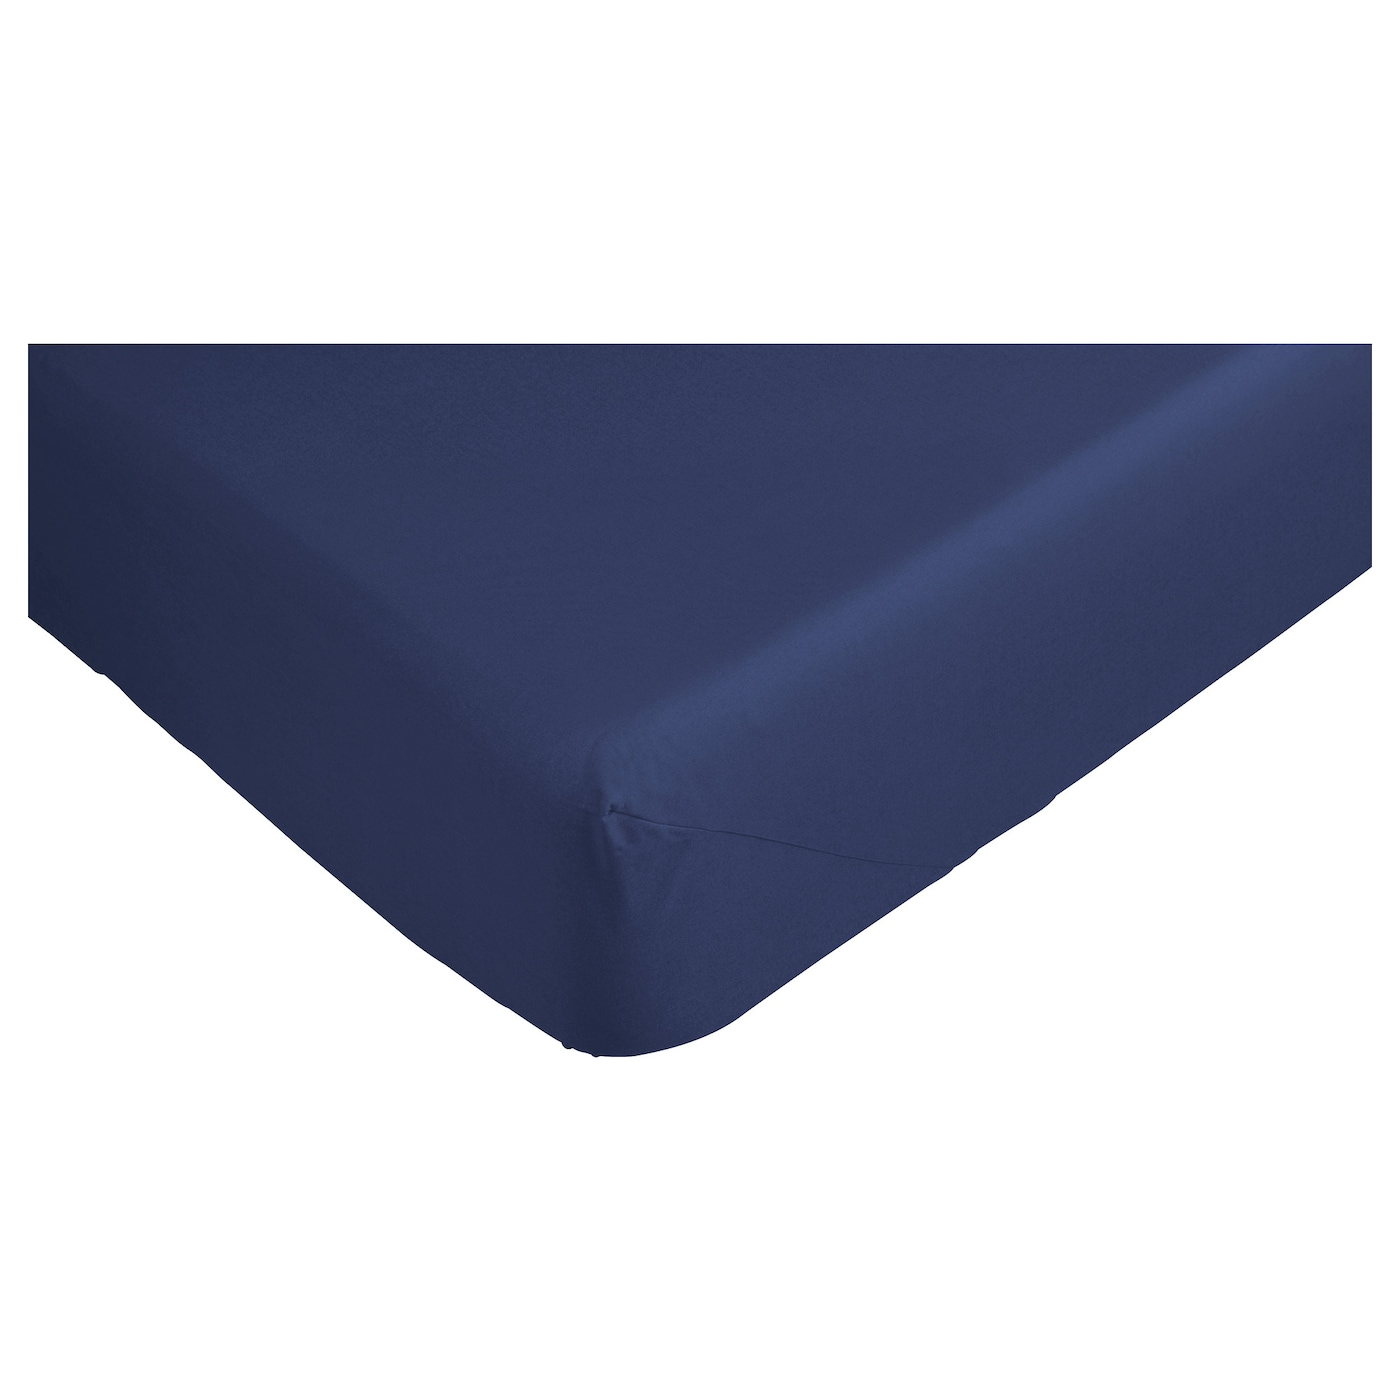 IKEA DVALA fitted sheet Cotton, feels soft and nice against your skin.